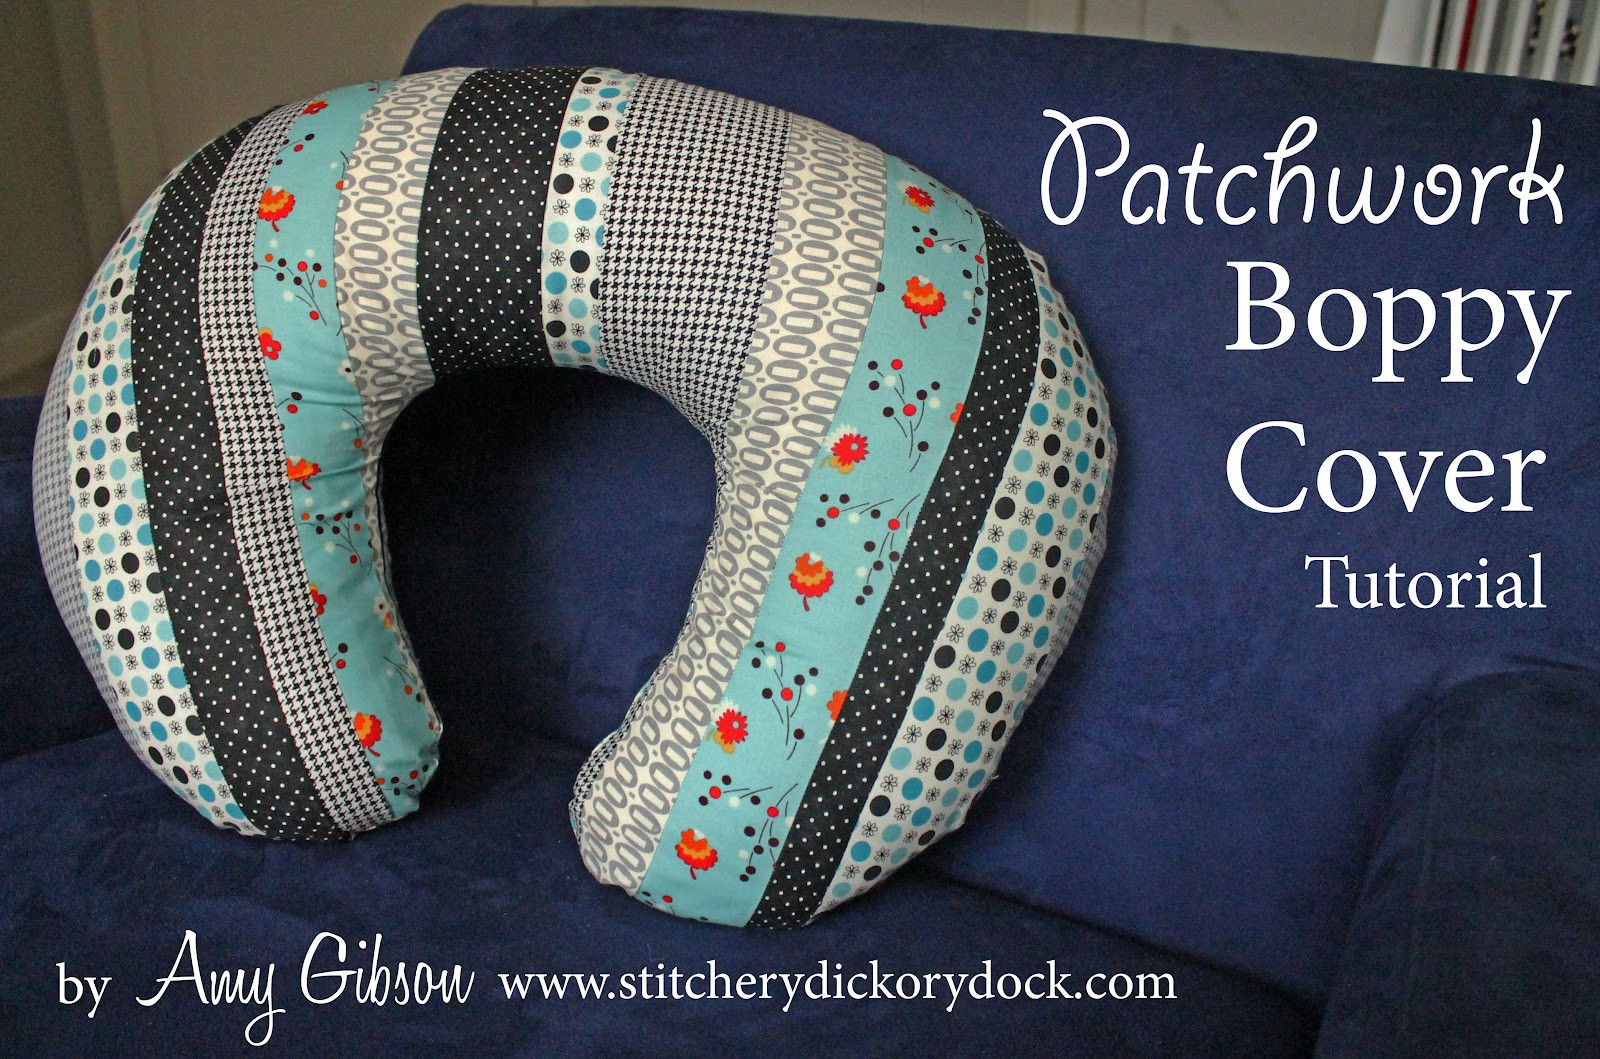 Boppy Pillow Cover Pattern Free No Zipper: Sew Lux Fabric   Blog  Design Challenge  Patchwork Boppy Cover    ,